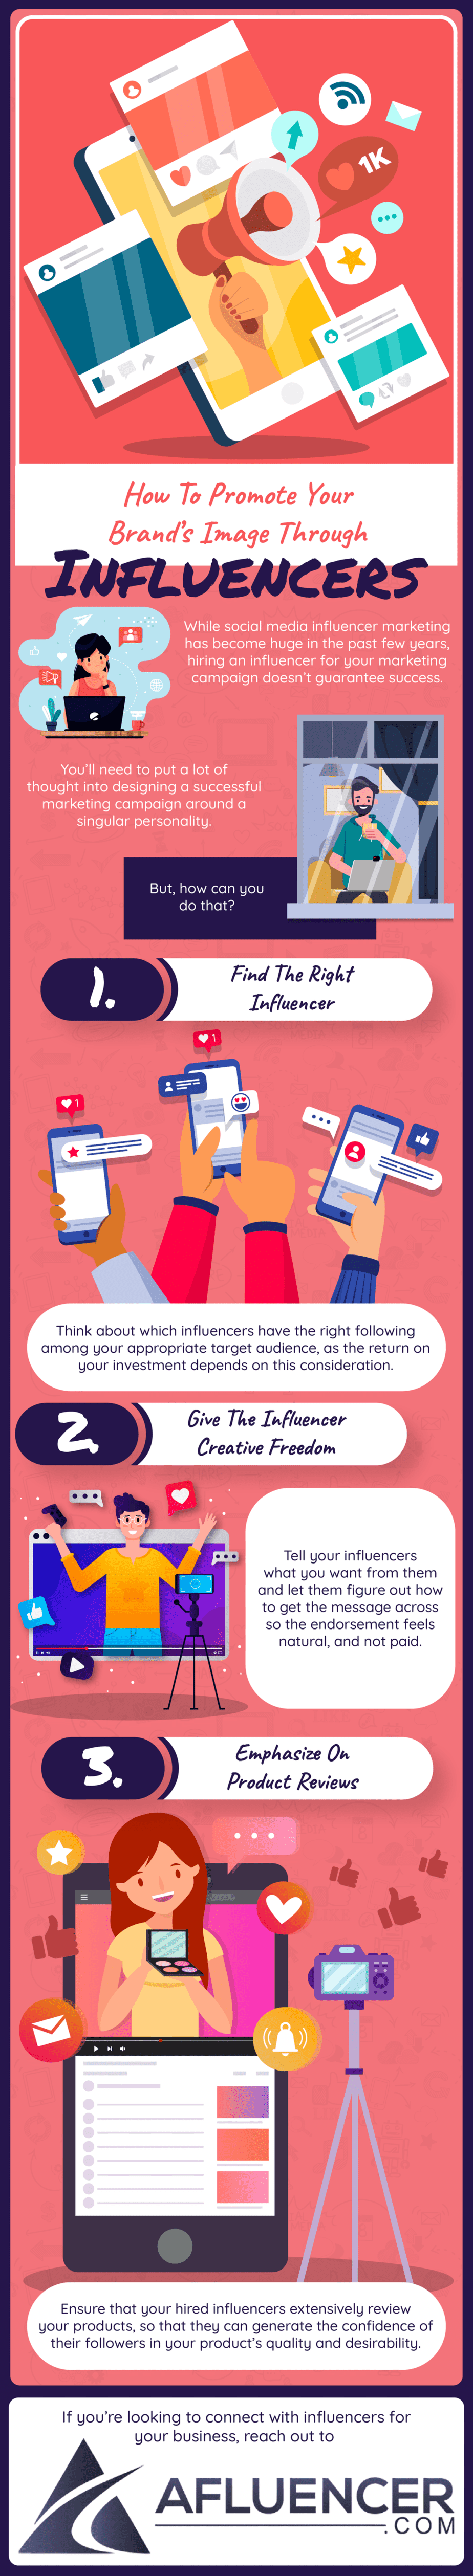 How To Promote Your Brand's Image Through Influencers - Infographic